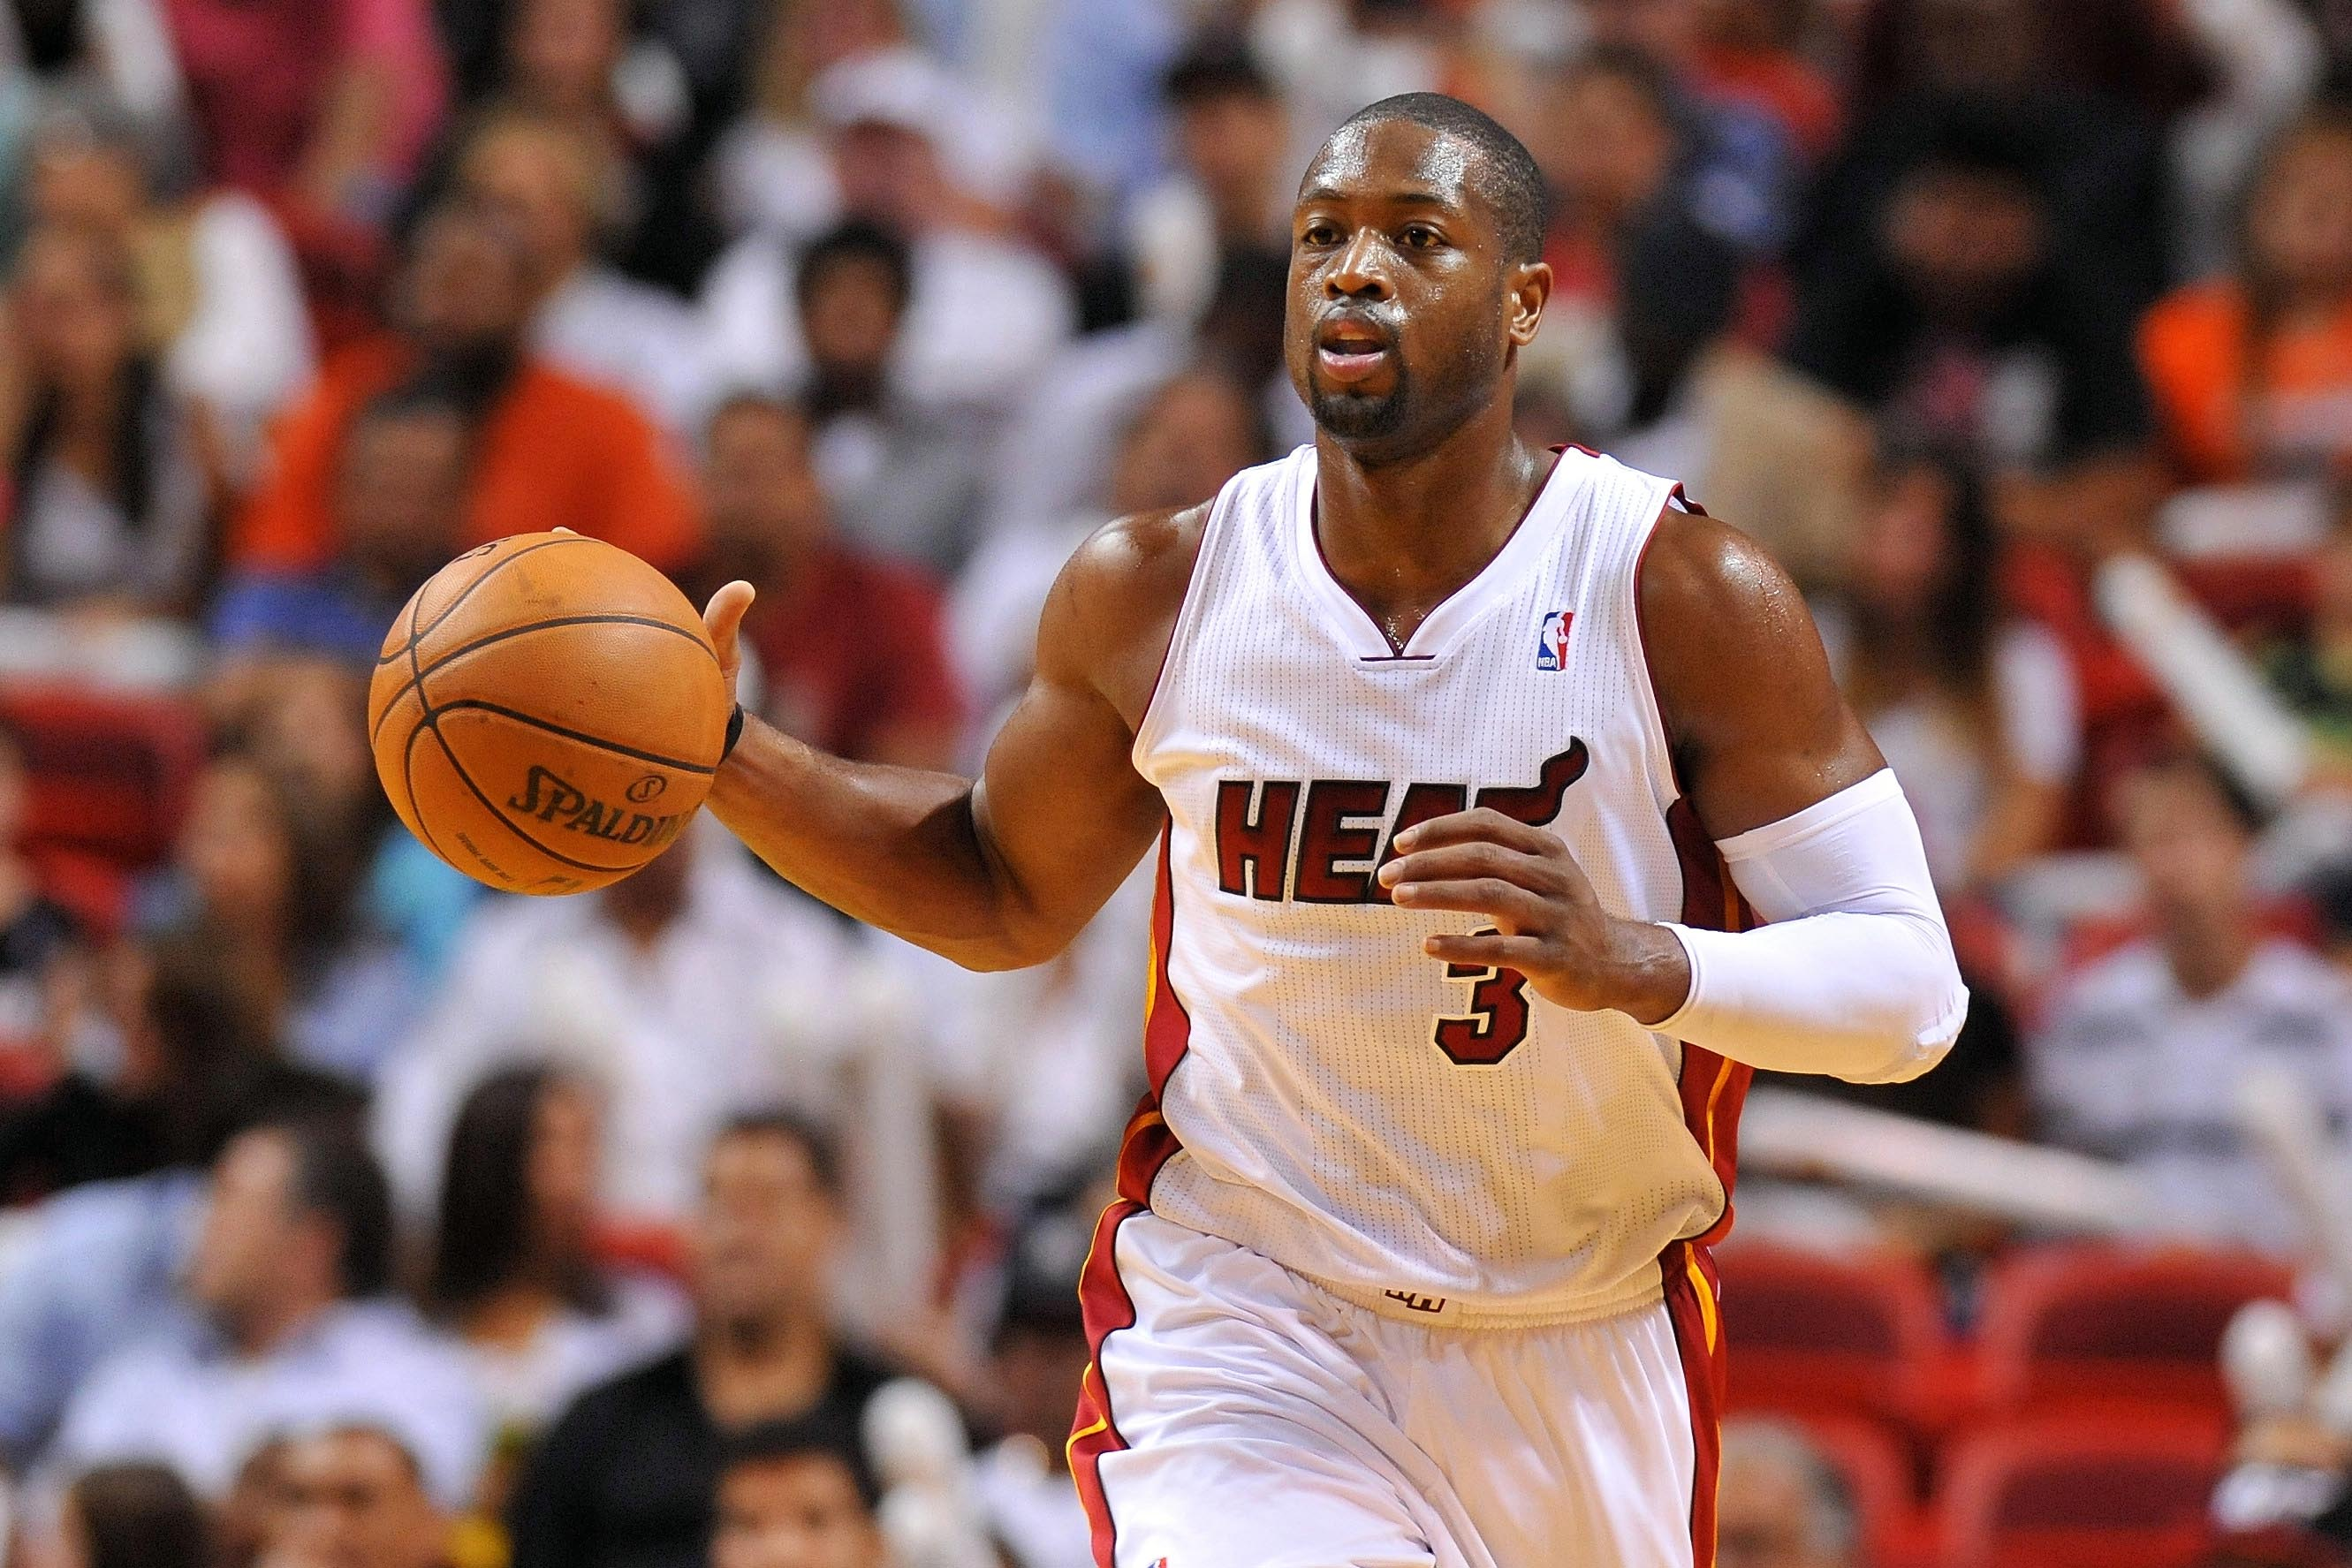 Dwyane Wade Wallpapers High Resolution and Quality Download